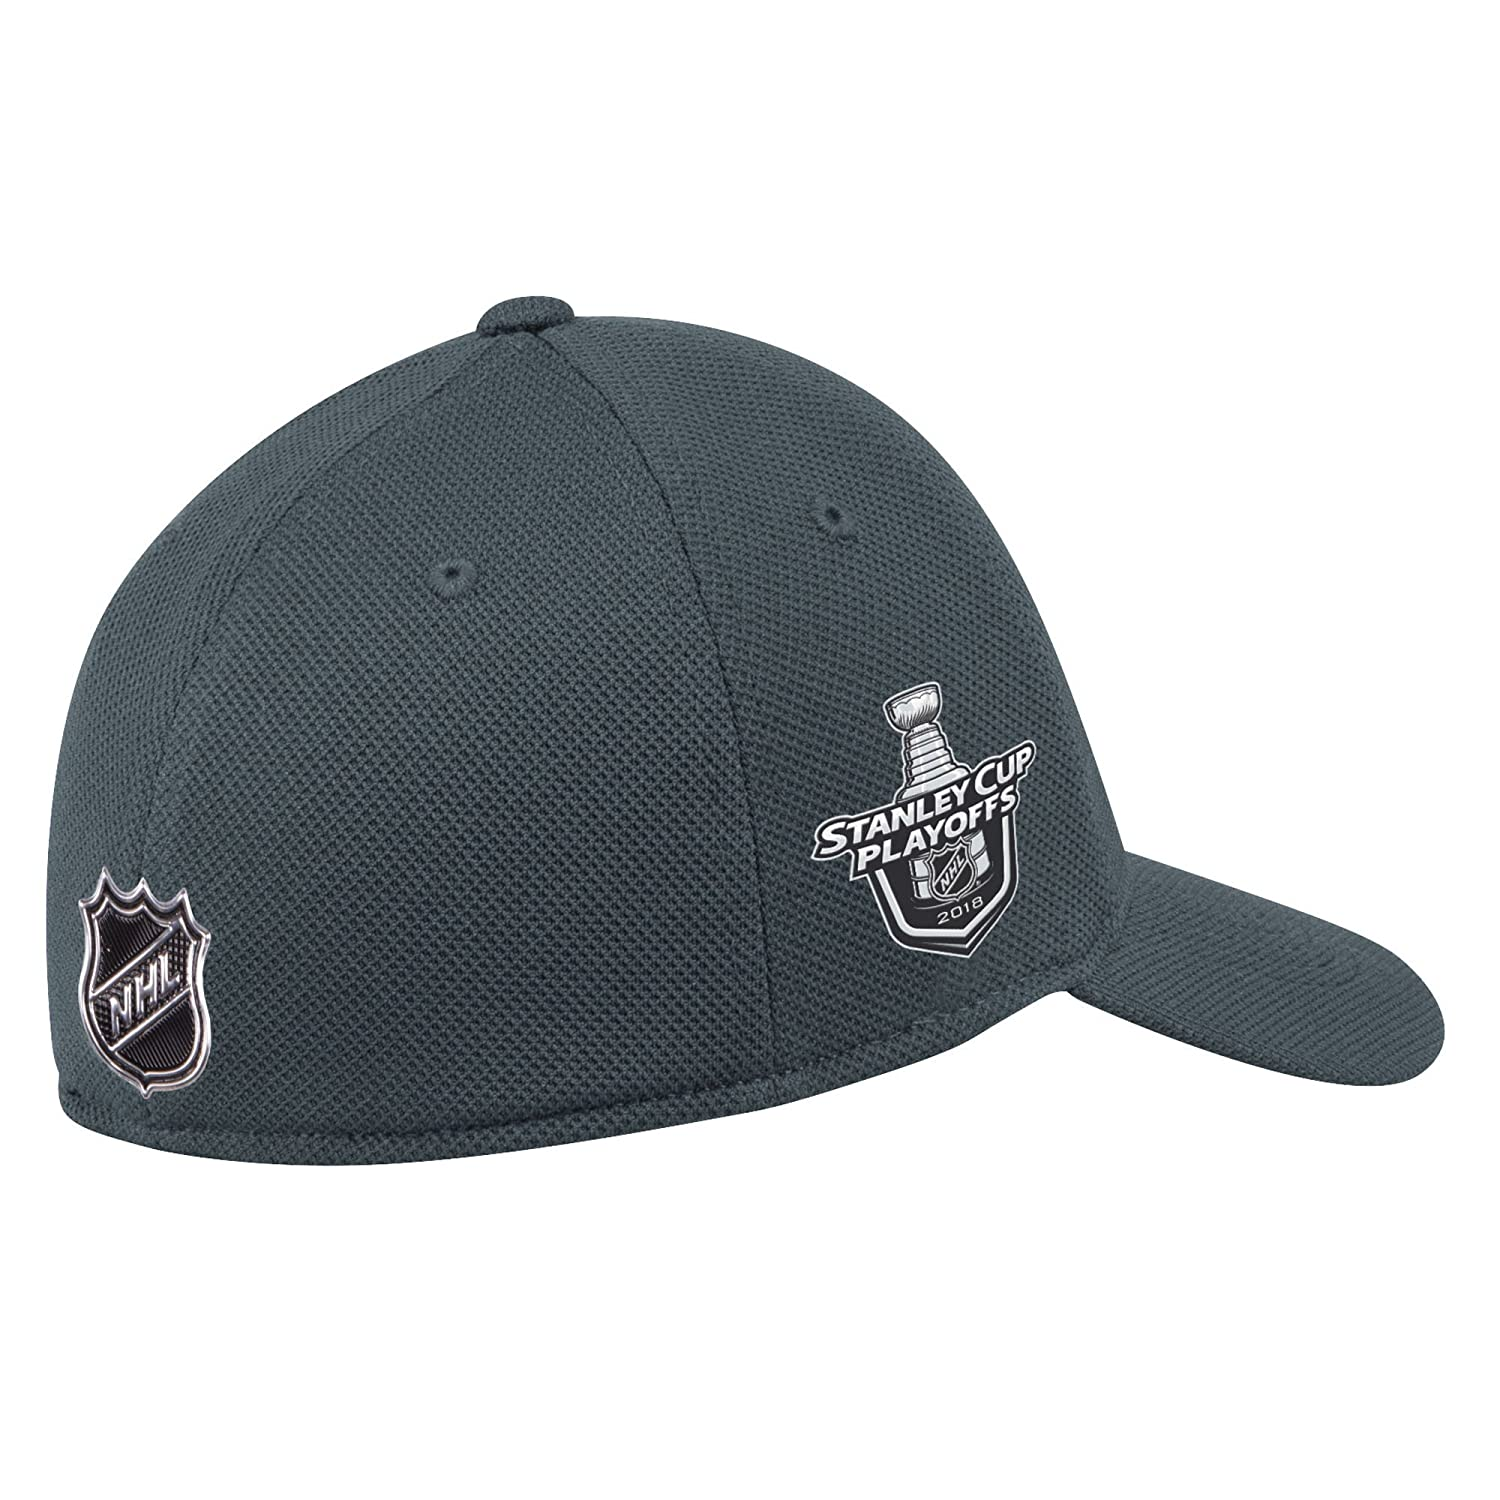 1fff18096f8681 ... clearance adidas vegas golden knights 2018 nhl stanley cup playoffs  flexfit slouch fitted hat s m baseball